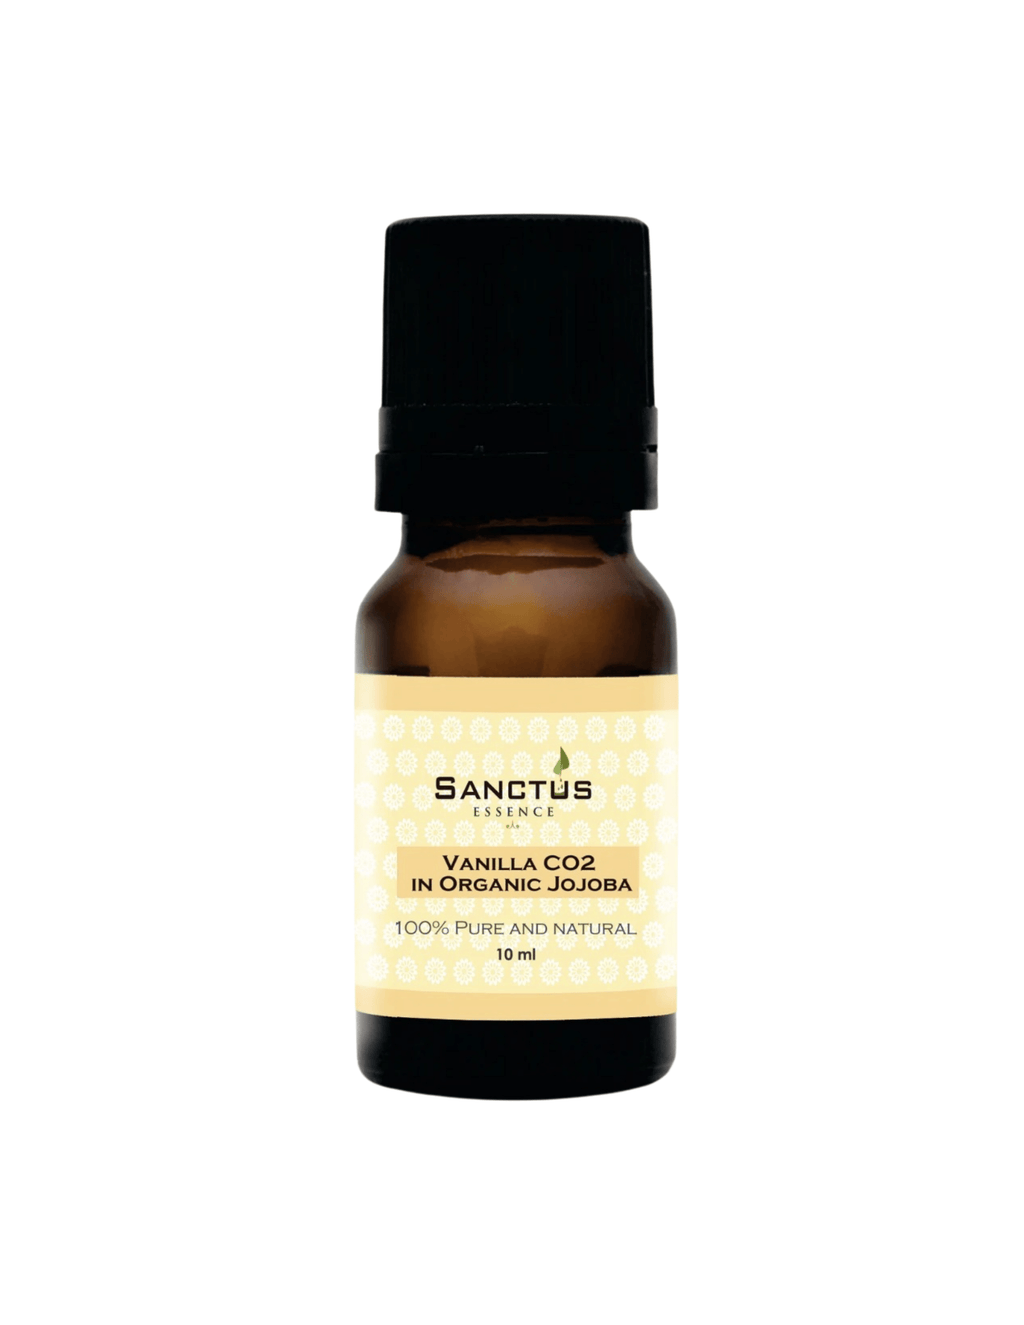 Vanilla CO2 in Jojoba Oil